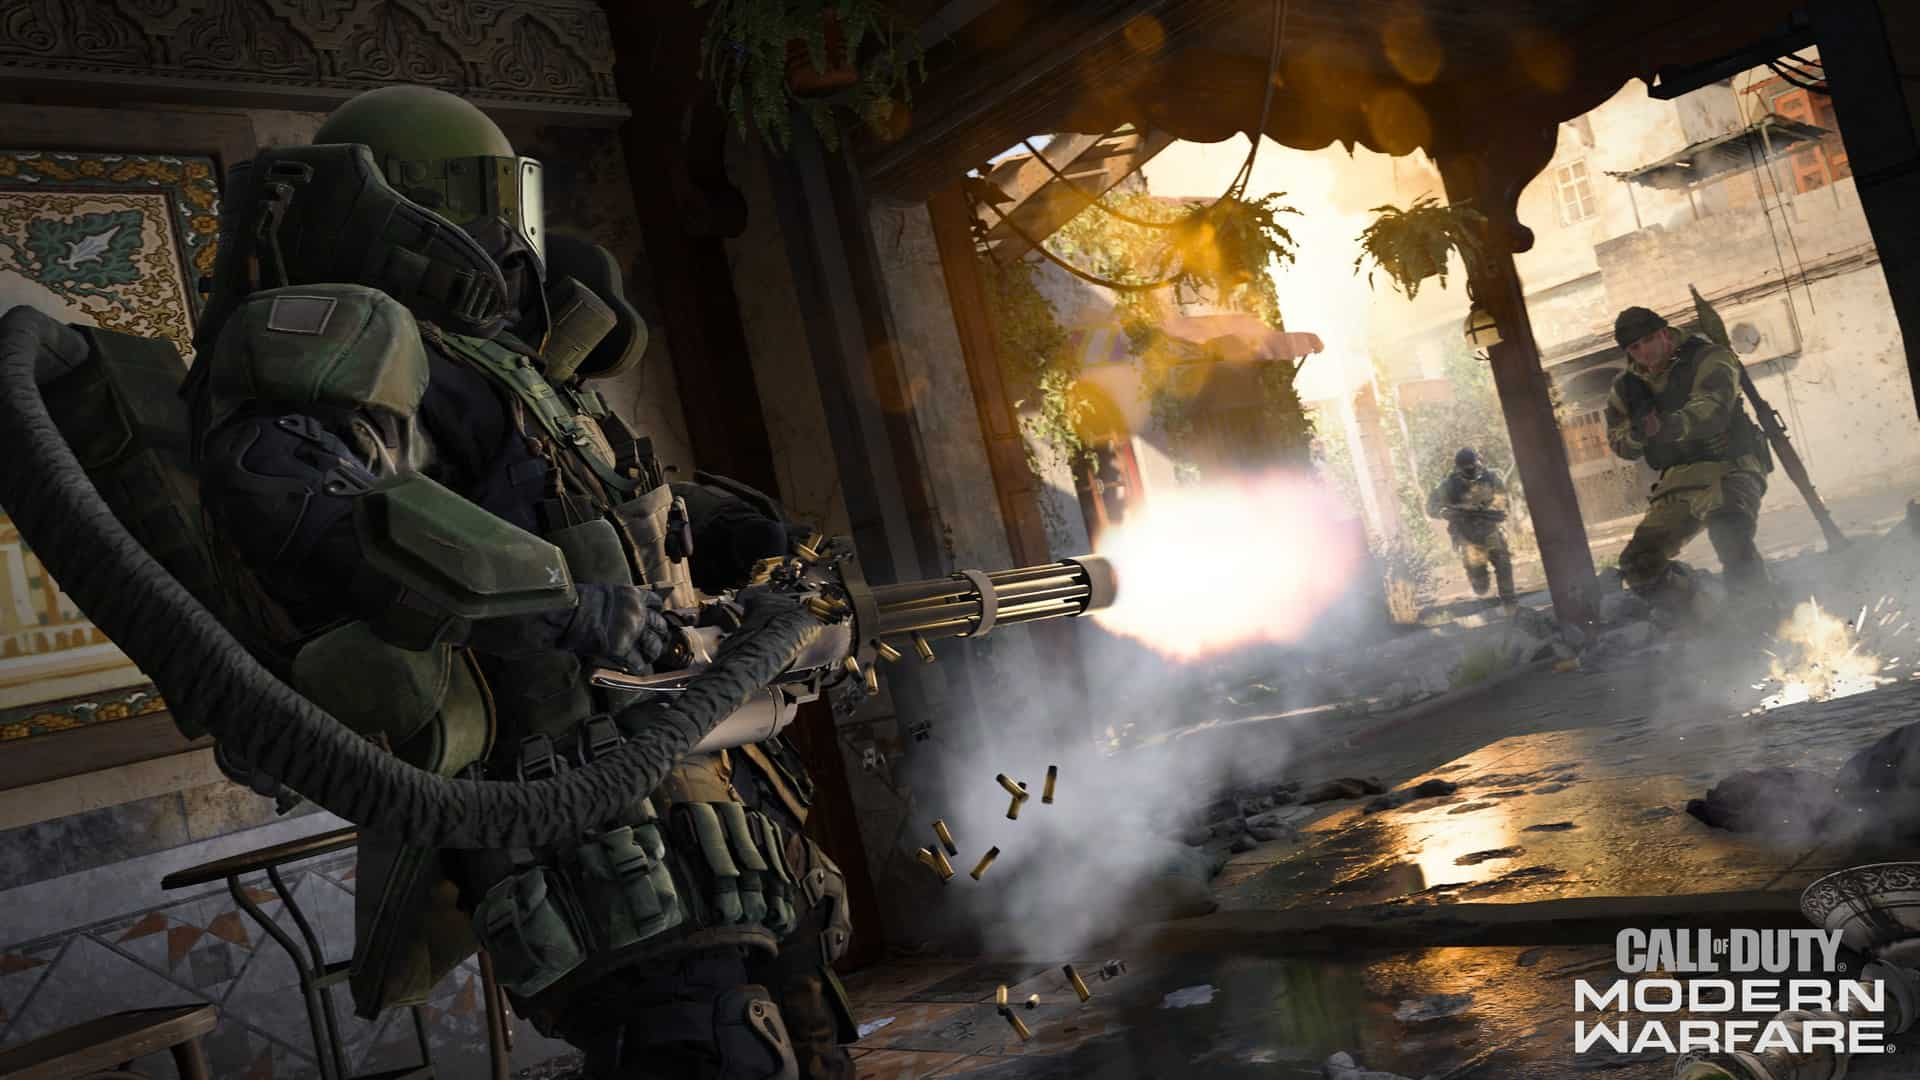 Call Of Duty Modern Warfare Introduces The Ultimate Multiplayer